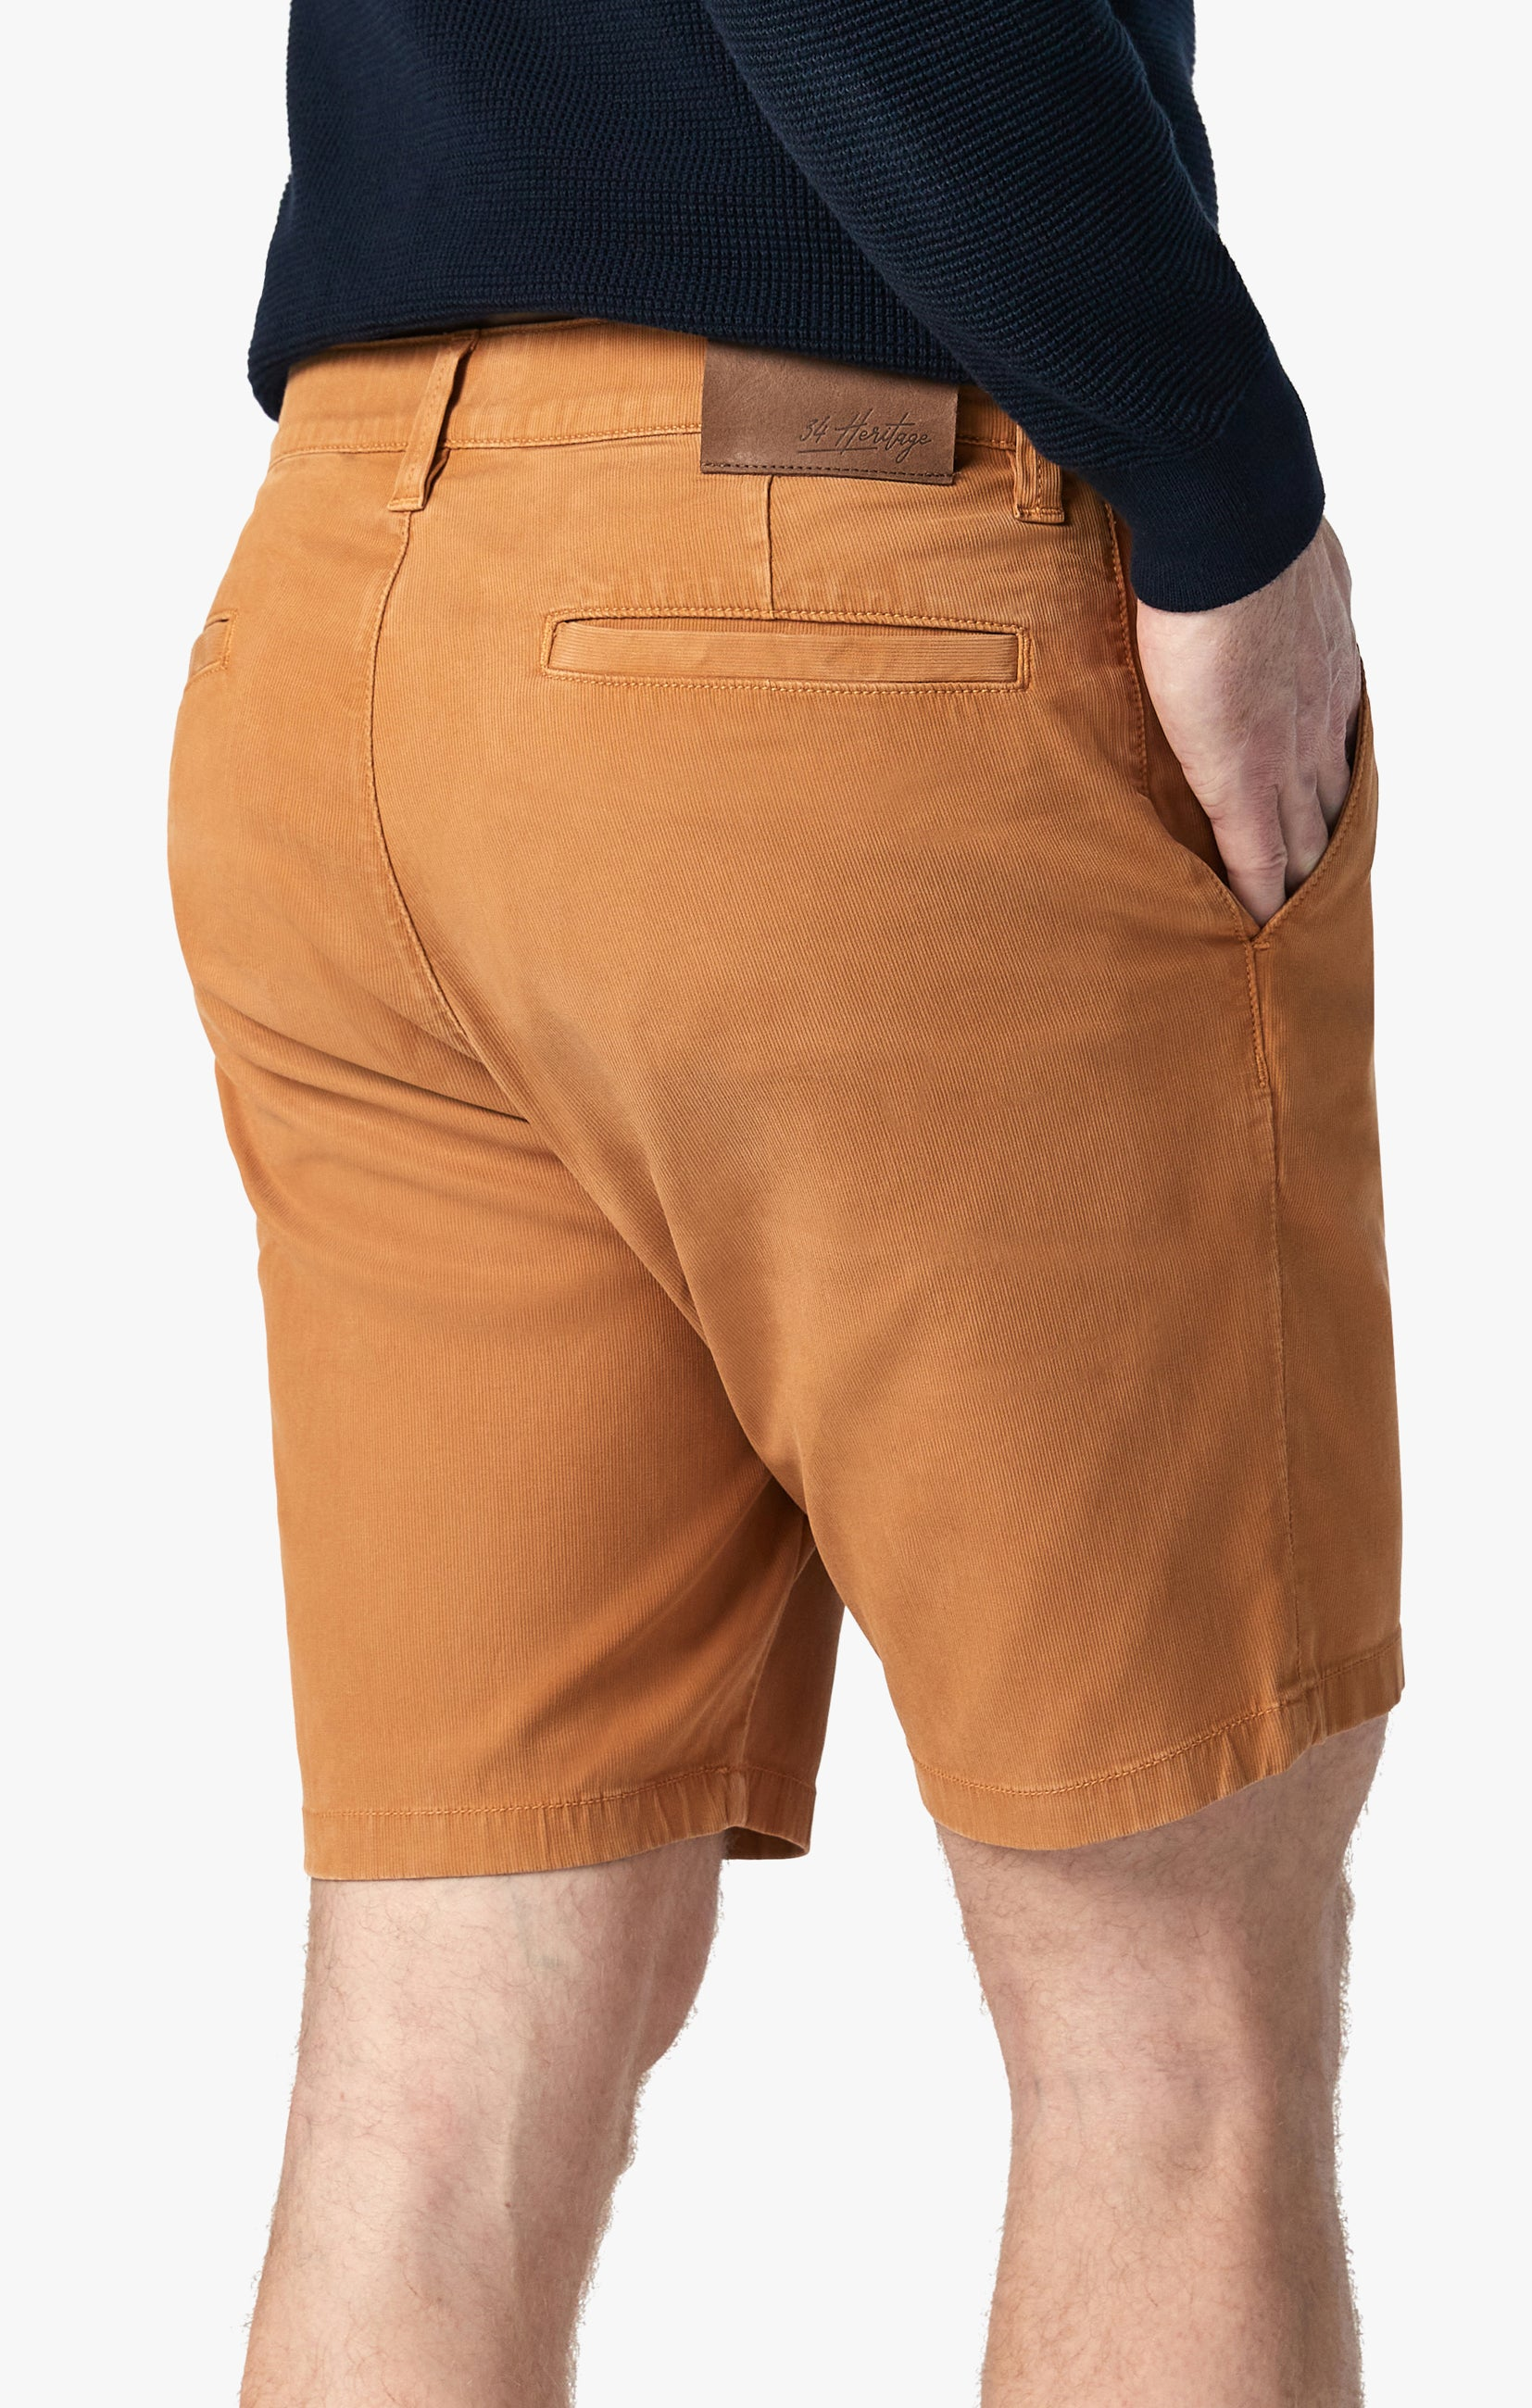 Arizona Shorts in Brown Sugar Fine Touch Image 5